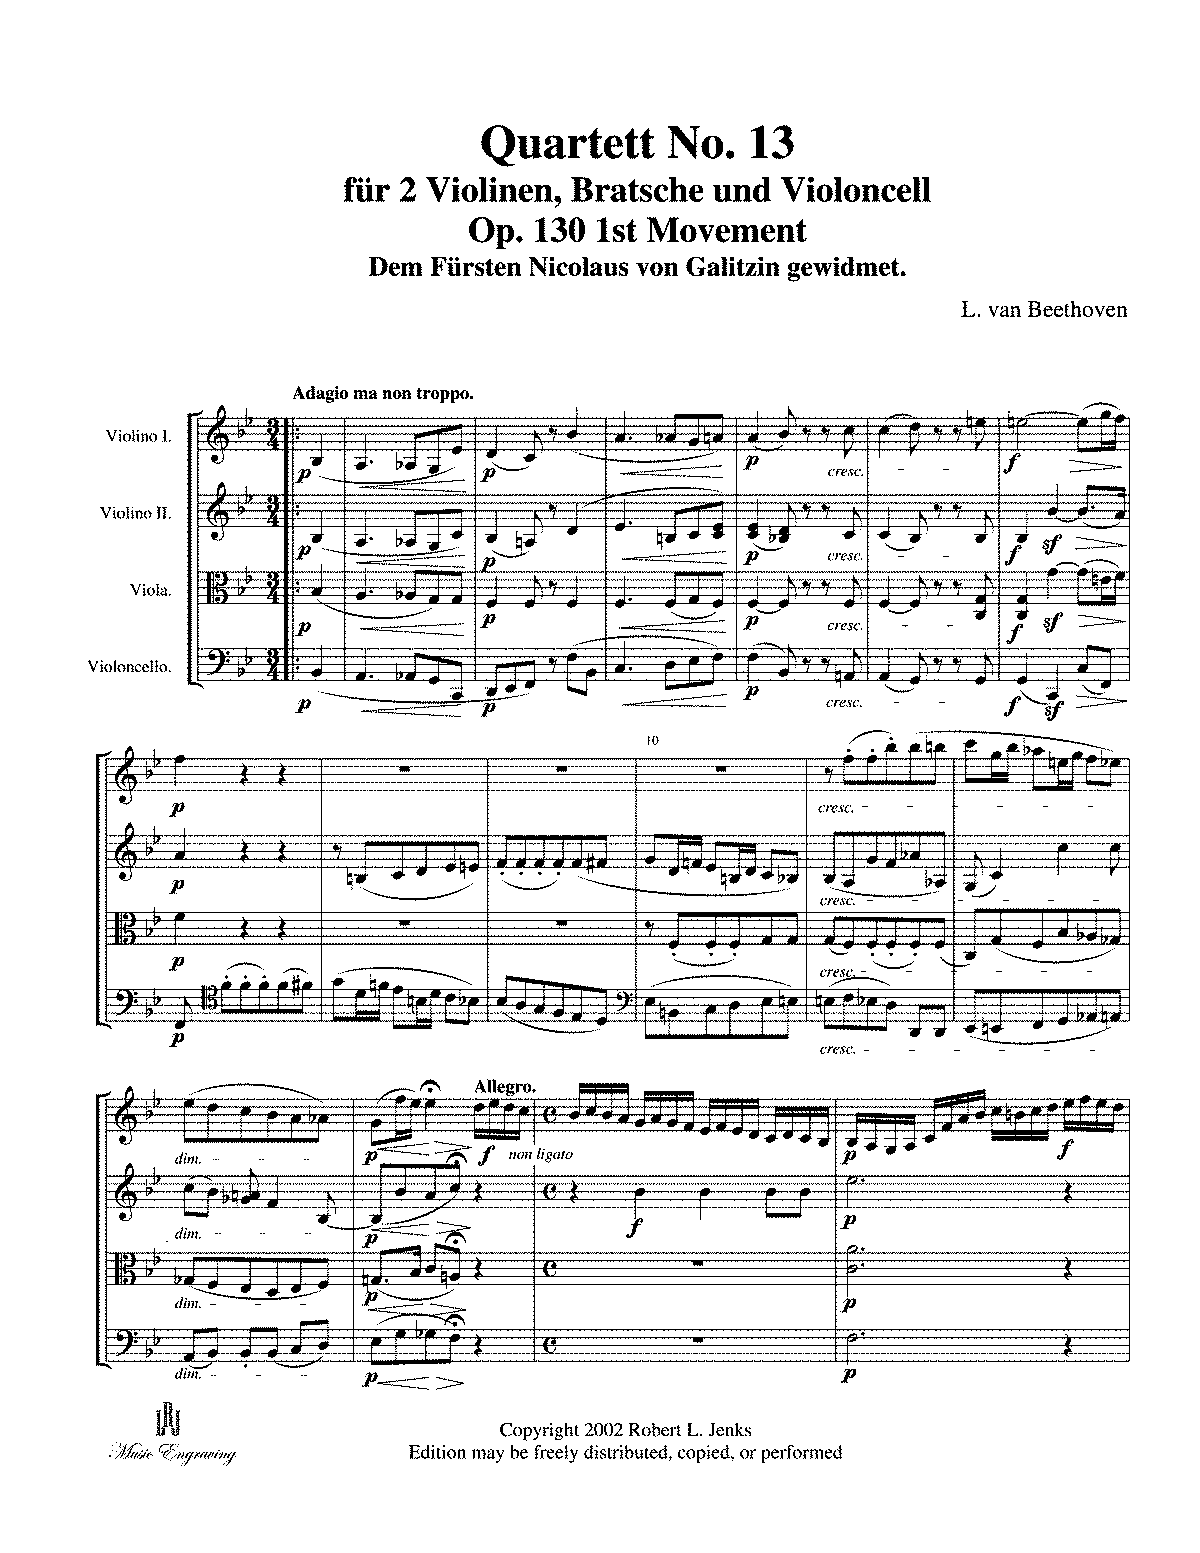 String Quartet No. 13 1st Mvt.pdf